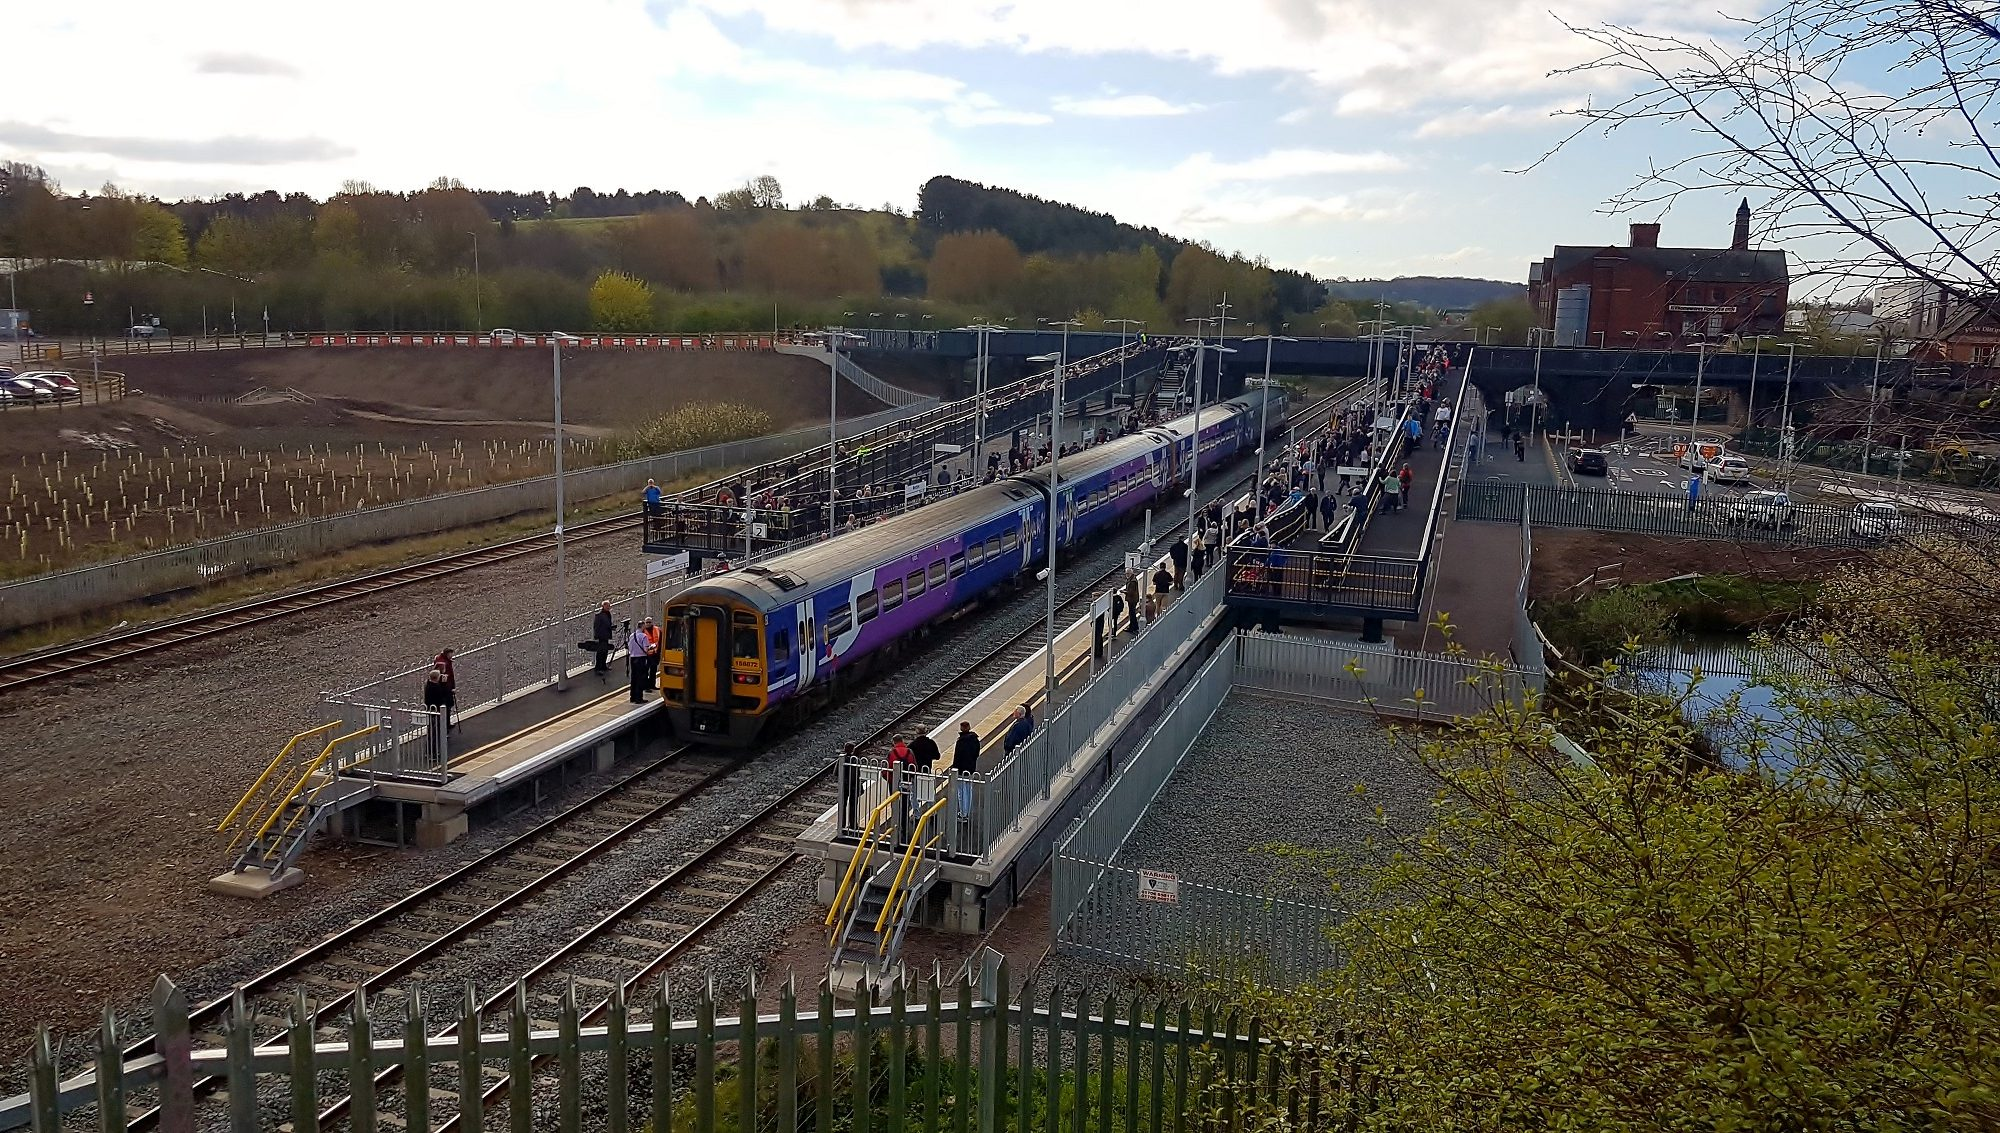 Arial view of End of Platform Stairs at llkeston Railway Station